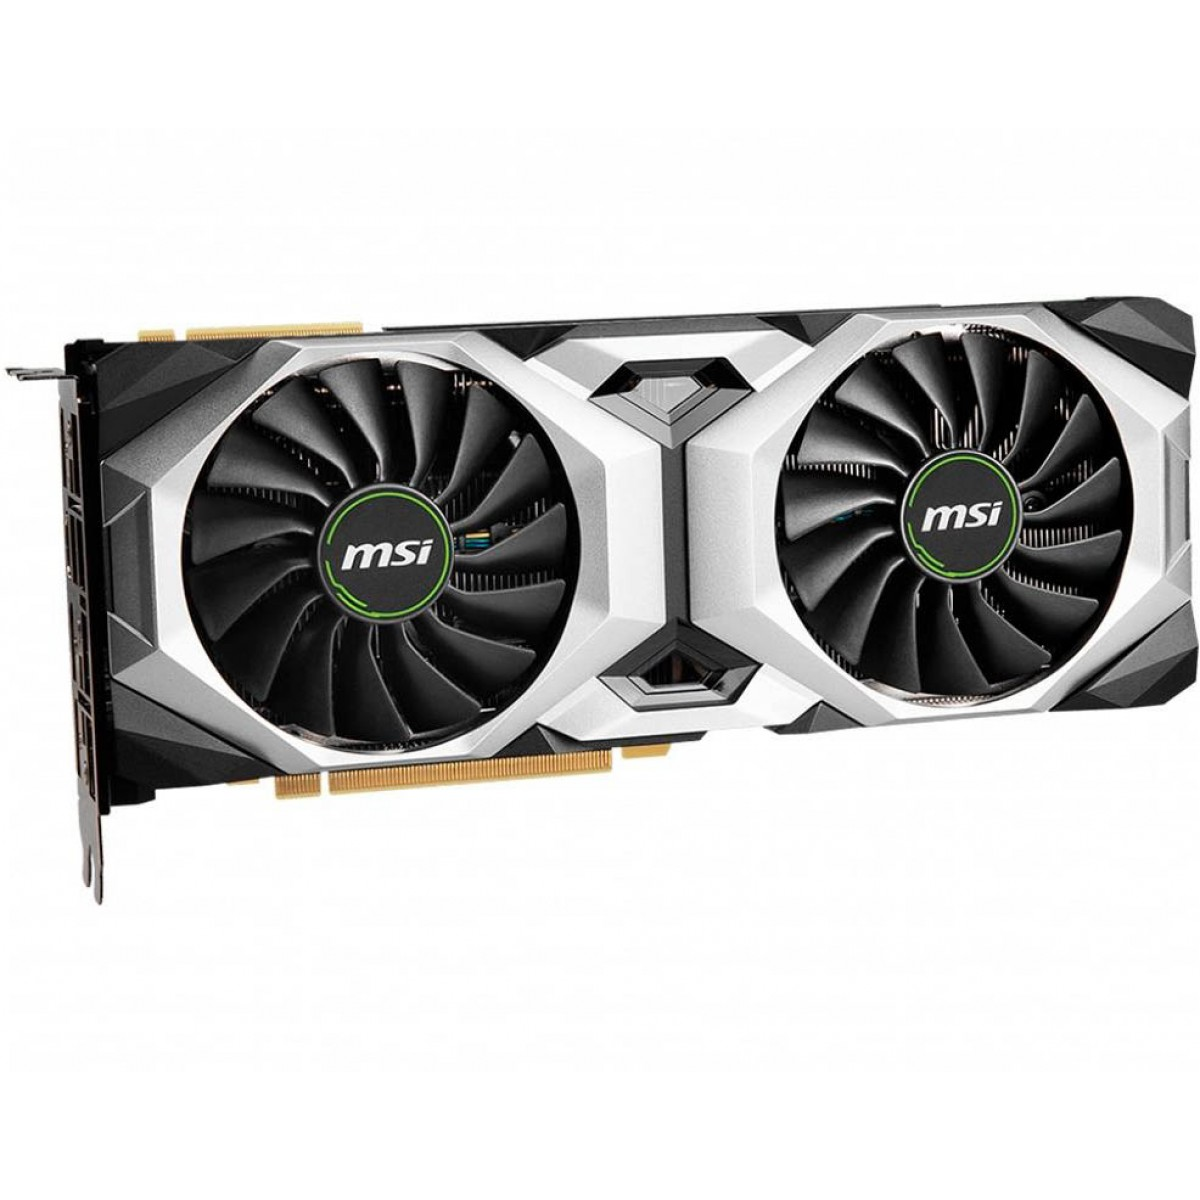 Placa de Video MSI GeForce RTX 2080 Super Ventus OC Dual, 8GB GDDR6, 256bit